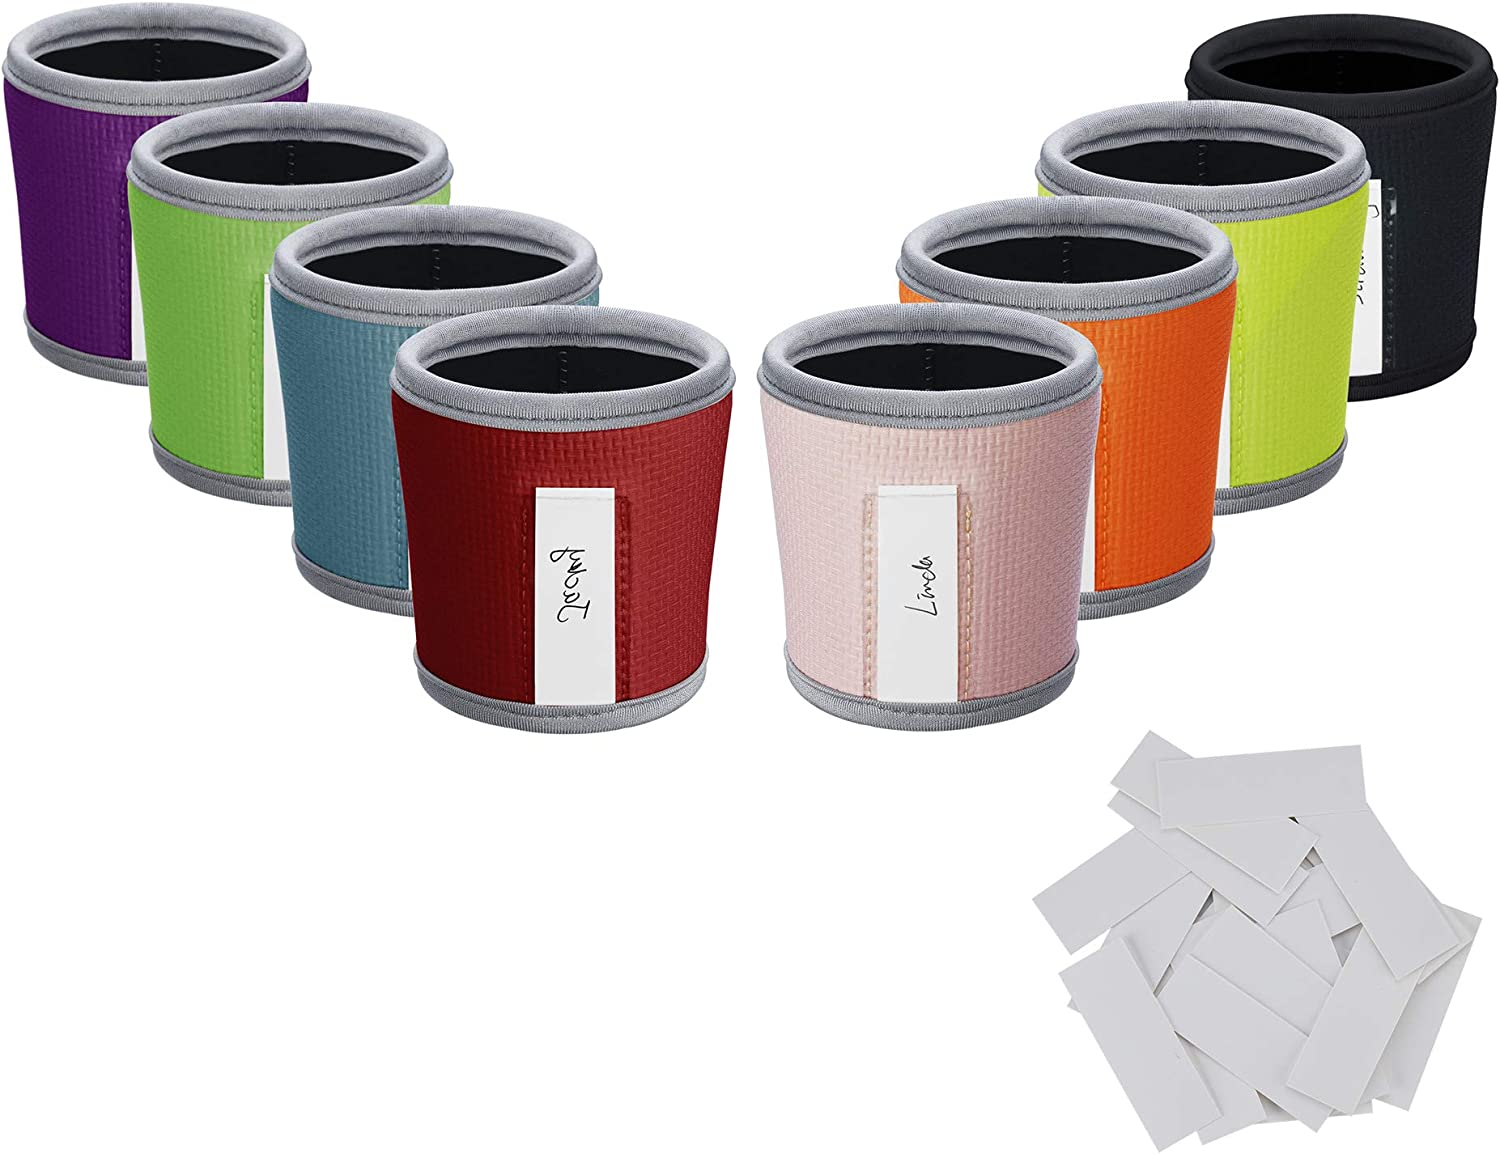 Beautyflier 8pcs Anti-Slip Embossed Neoprene 3mm Thick Collapsible Heat Resistant Coffee Cup Insulated Sleeve for Coffee/Tea/Cold Drinks (Multicolor embossed)